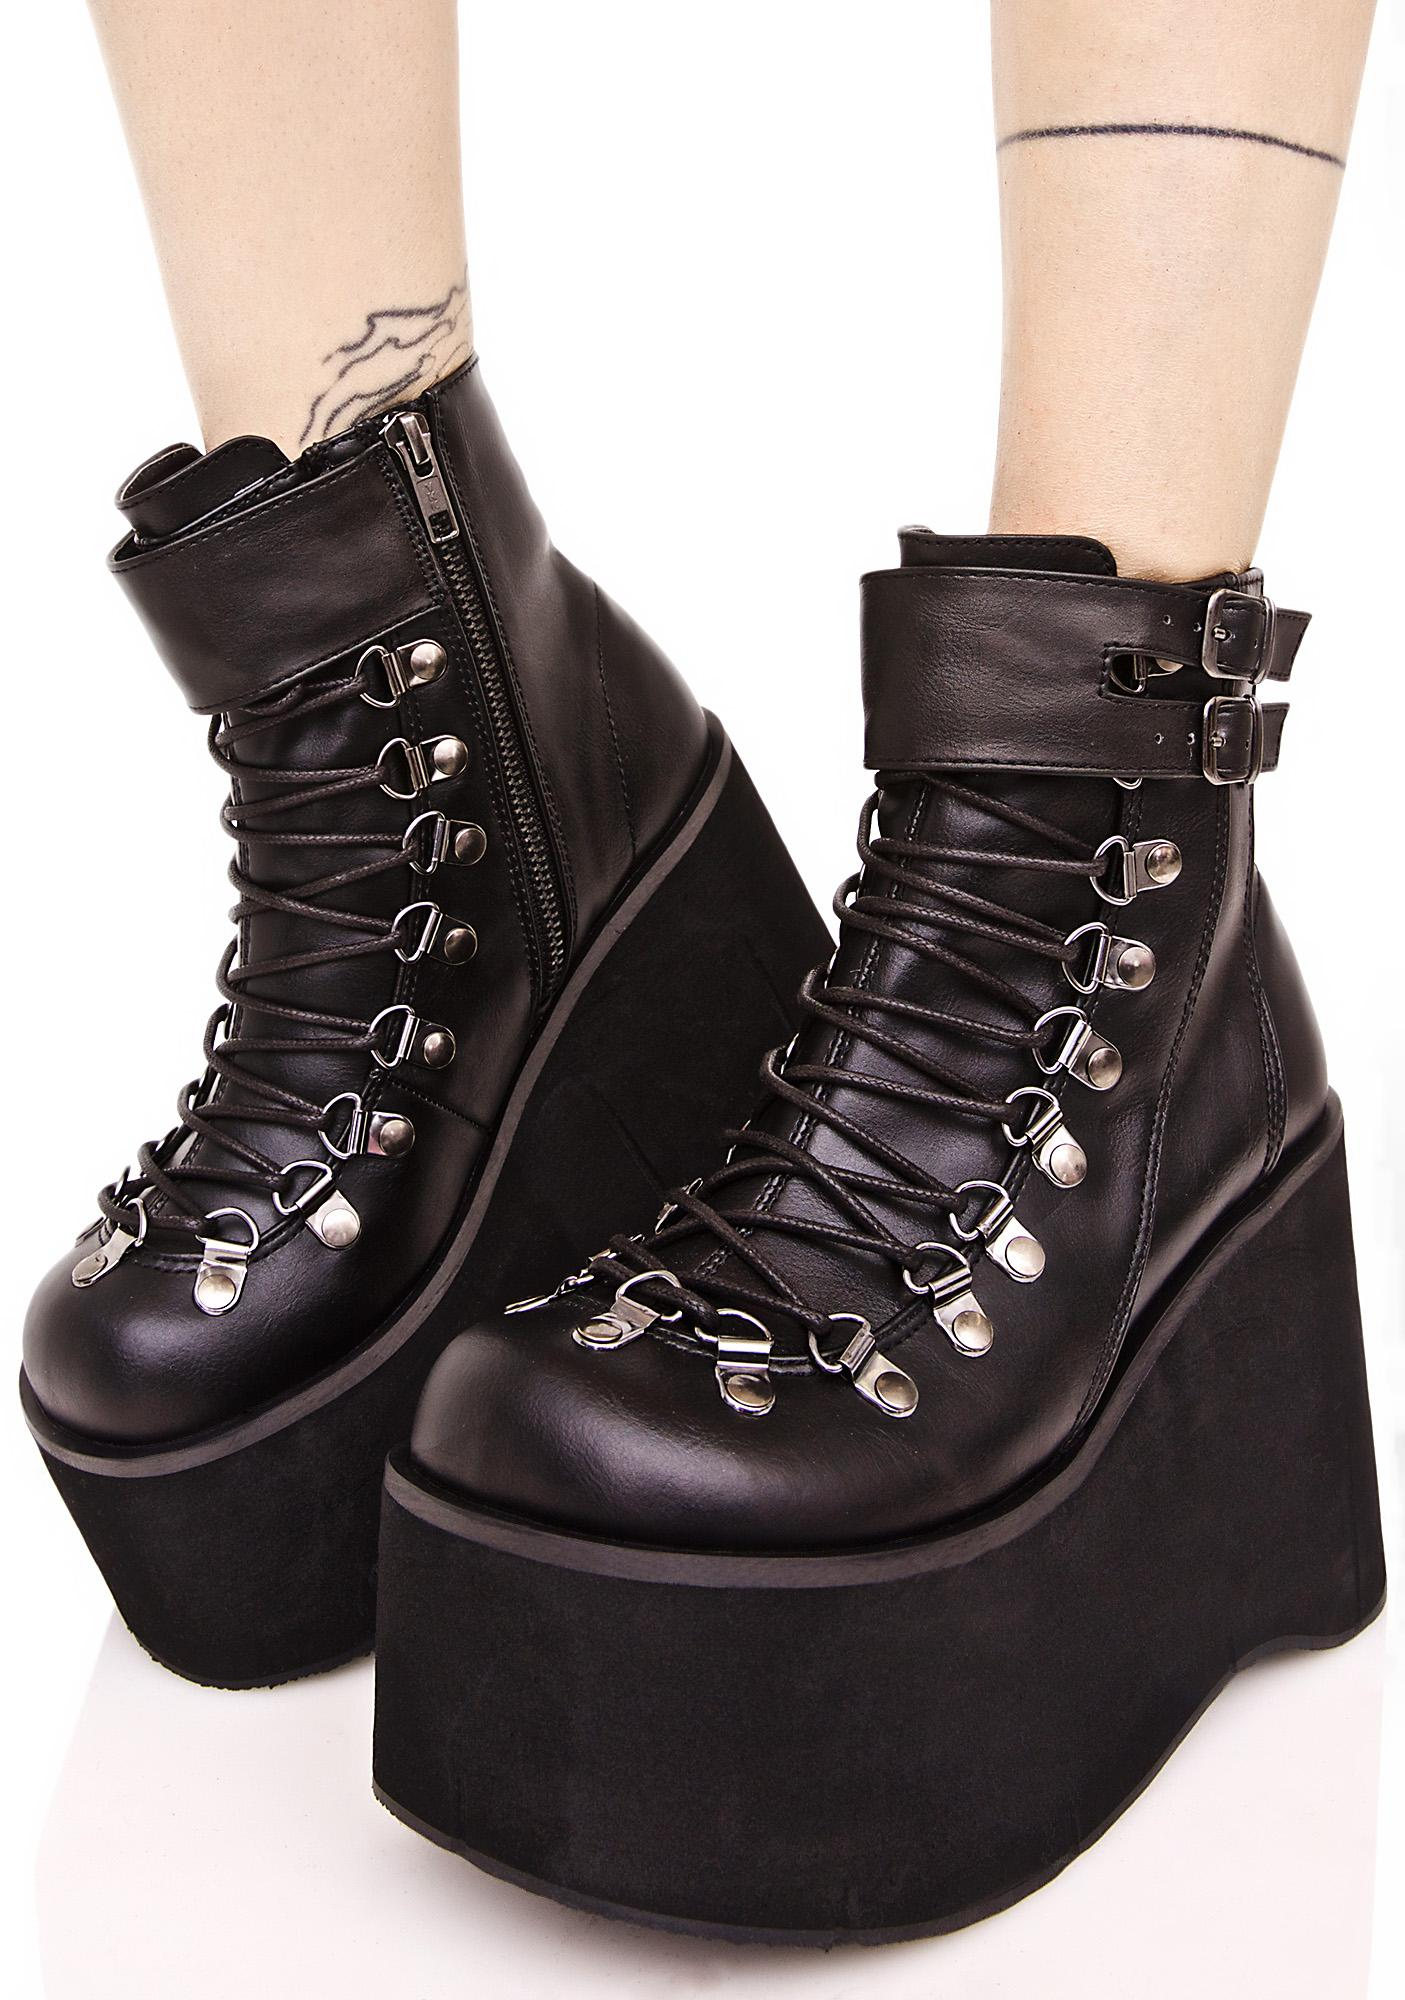 Related: platform boots goth leather platform boots demonia platform sneakers mens platform boots gothic platform boots goth boots platform shoes ankle boots platform booties. Include description. Categories. All. Womens Over The Knee Thigh High Pull On High Heel Platform Boots Leather Shoes. Unbranded. $ Buy It Now.